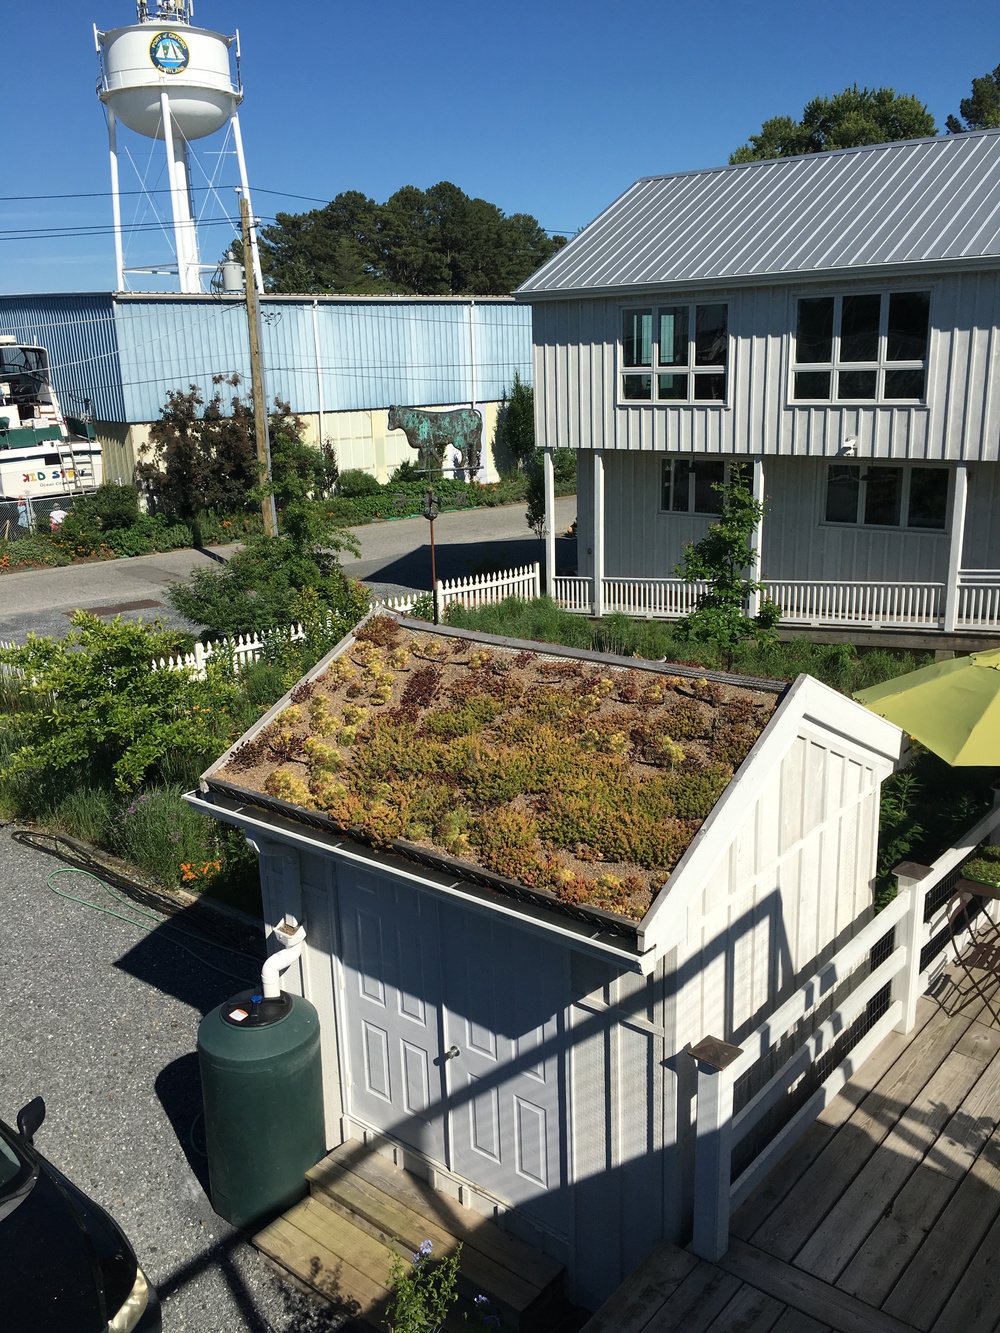 Innovative experiment for a green roof on a garden shed